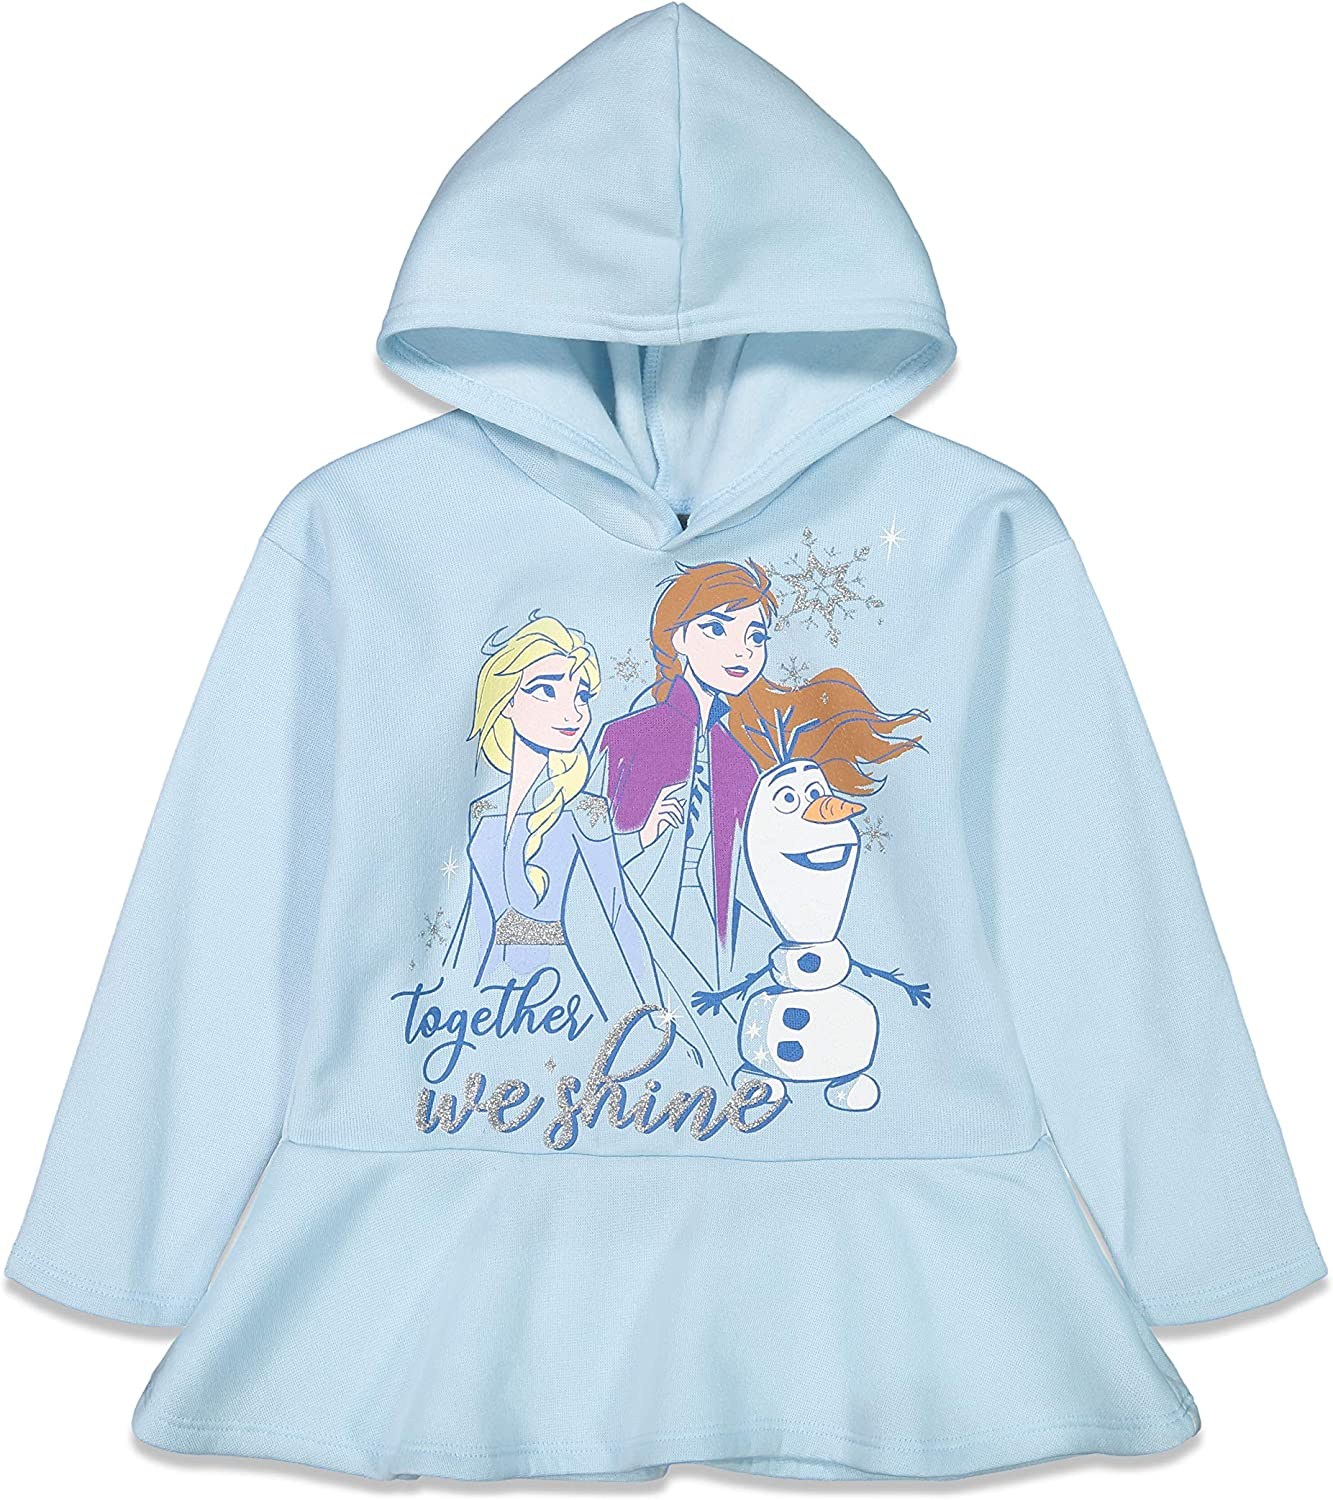 Disney Frozen Princess Anna Queen Elsa Ruffled Sleeves Hooded Legging Set